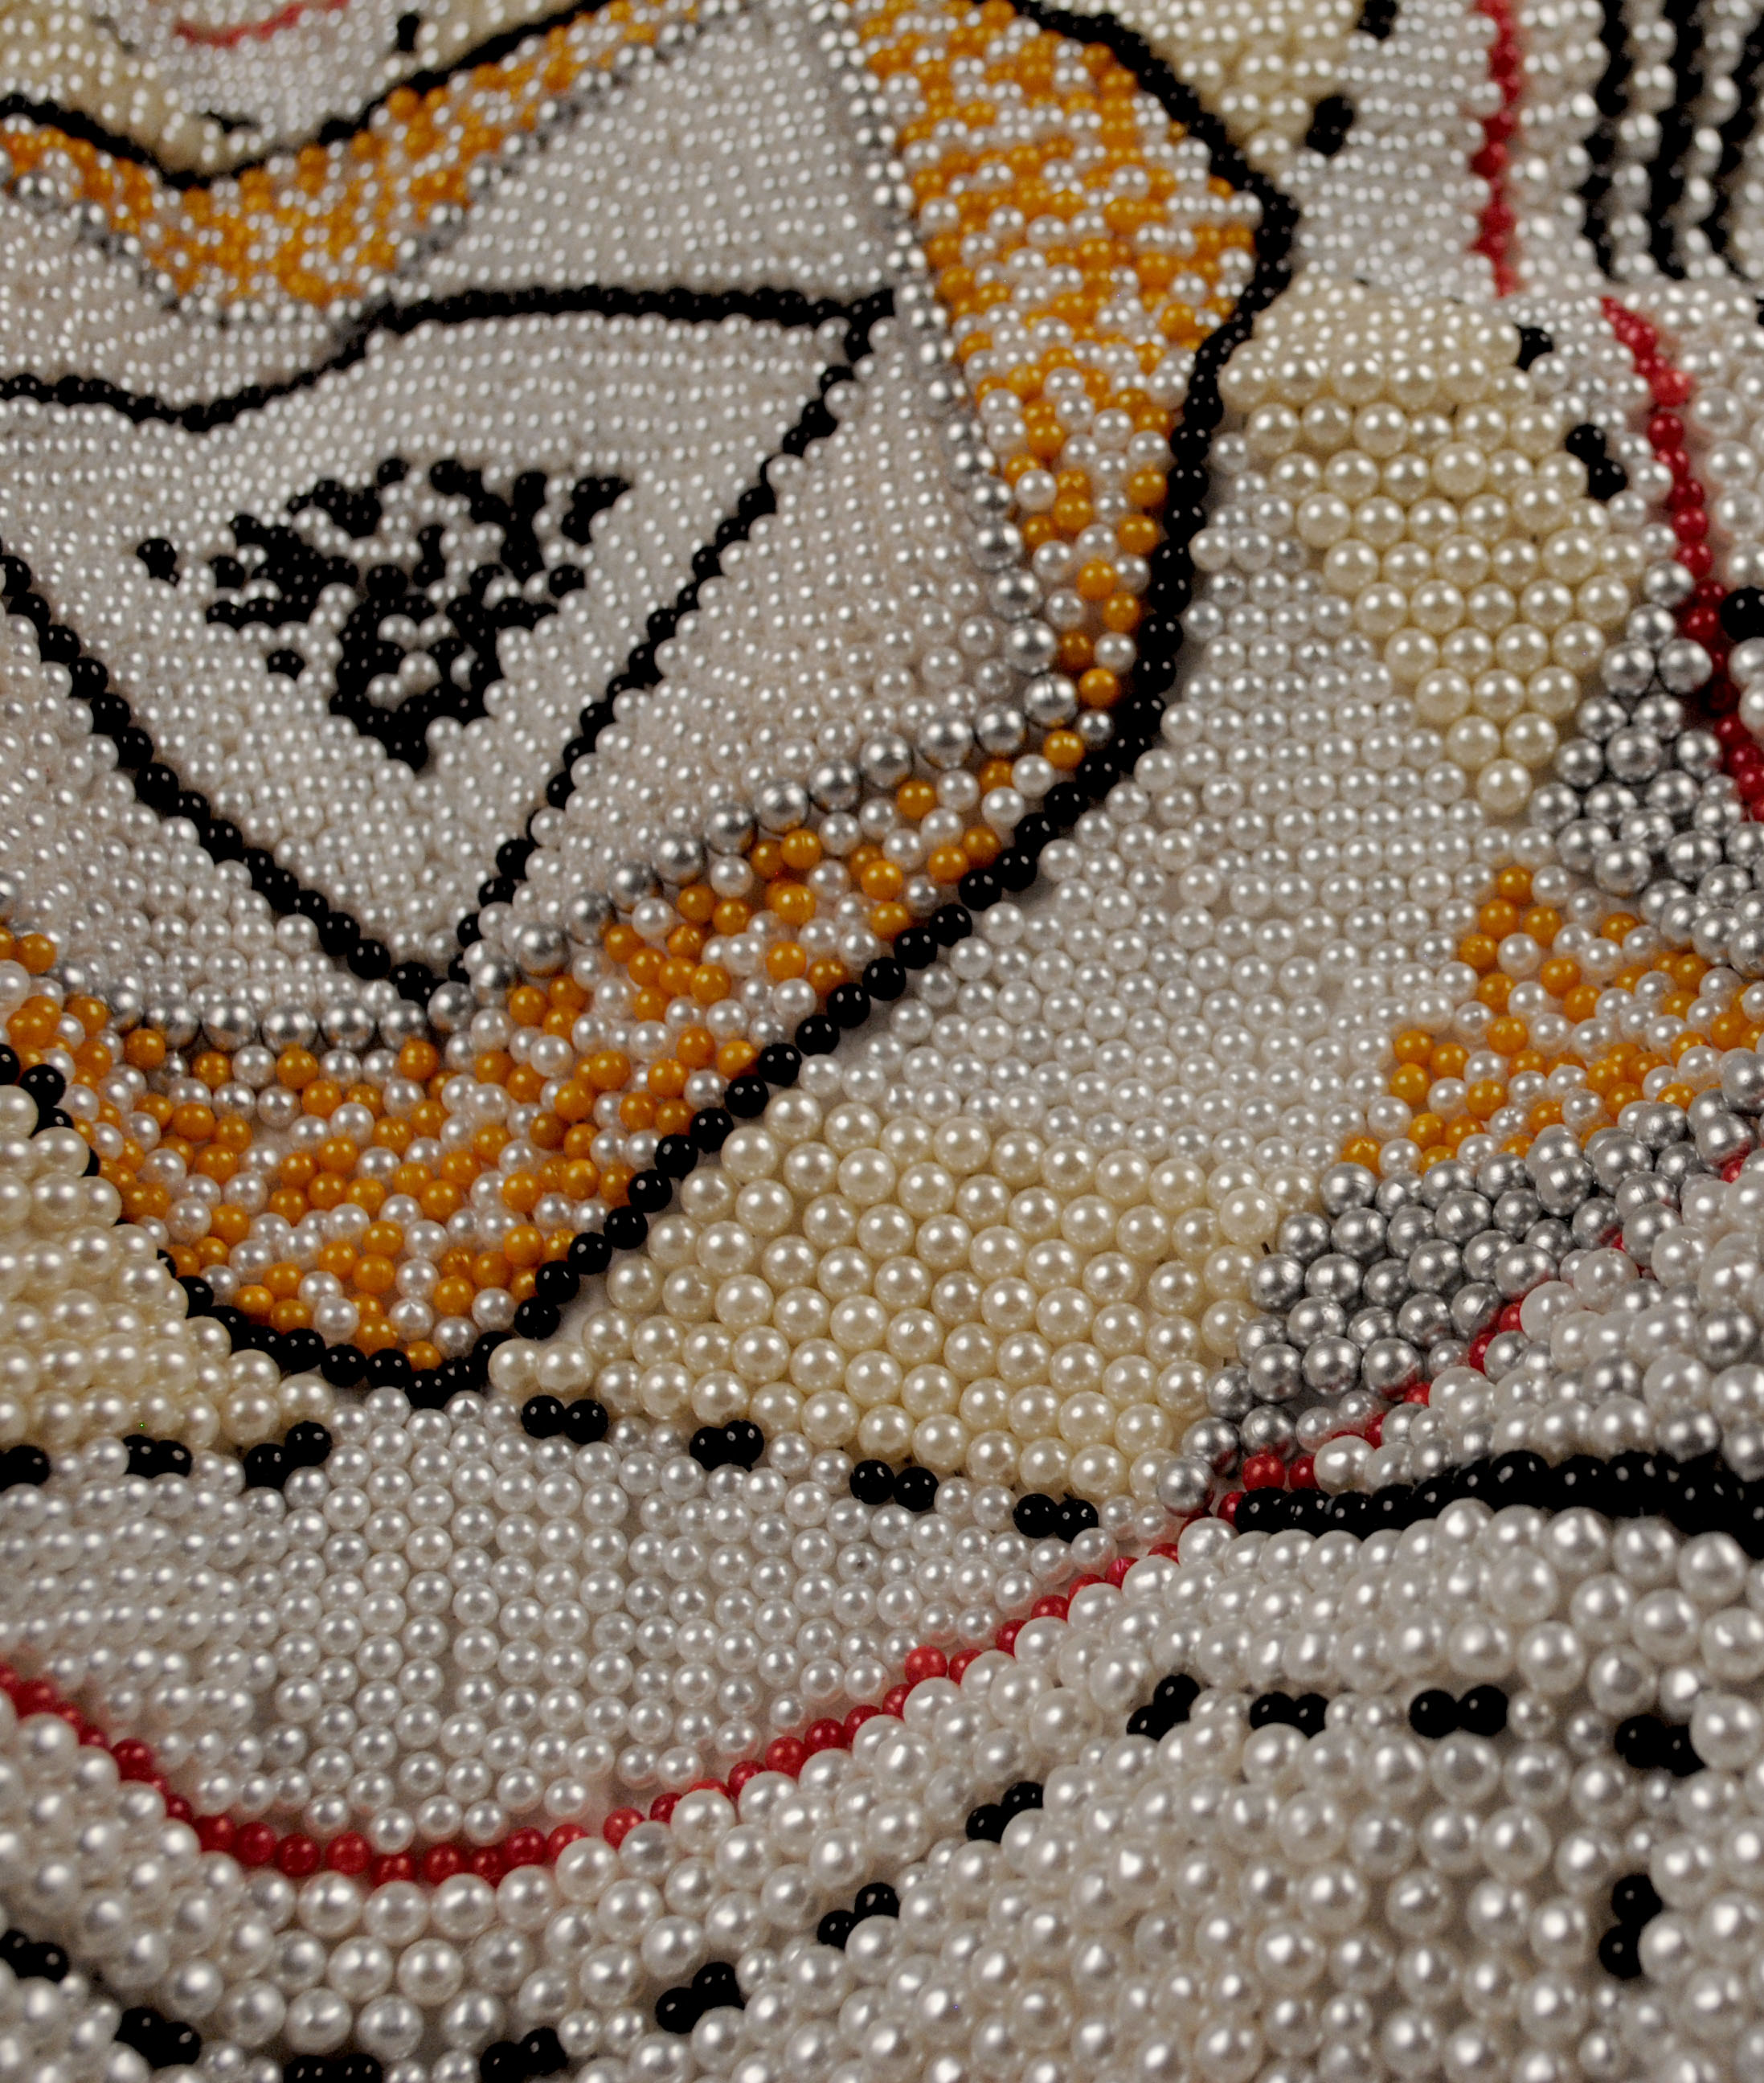 Pantaloncini: Work No. (indeterminate stillness) (Emma) (detail)  39,722 pearl corsage pins and colored dress pins, fabric, steel, 26 x 26 x 13 inches, 2017